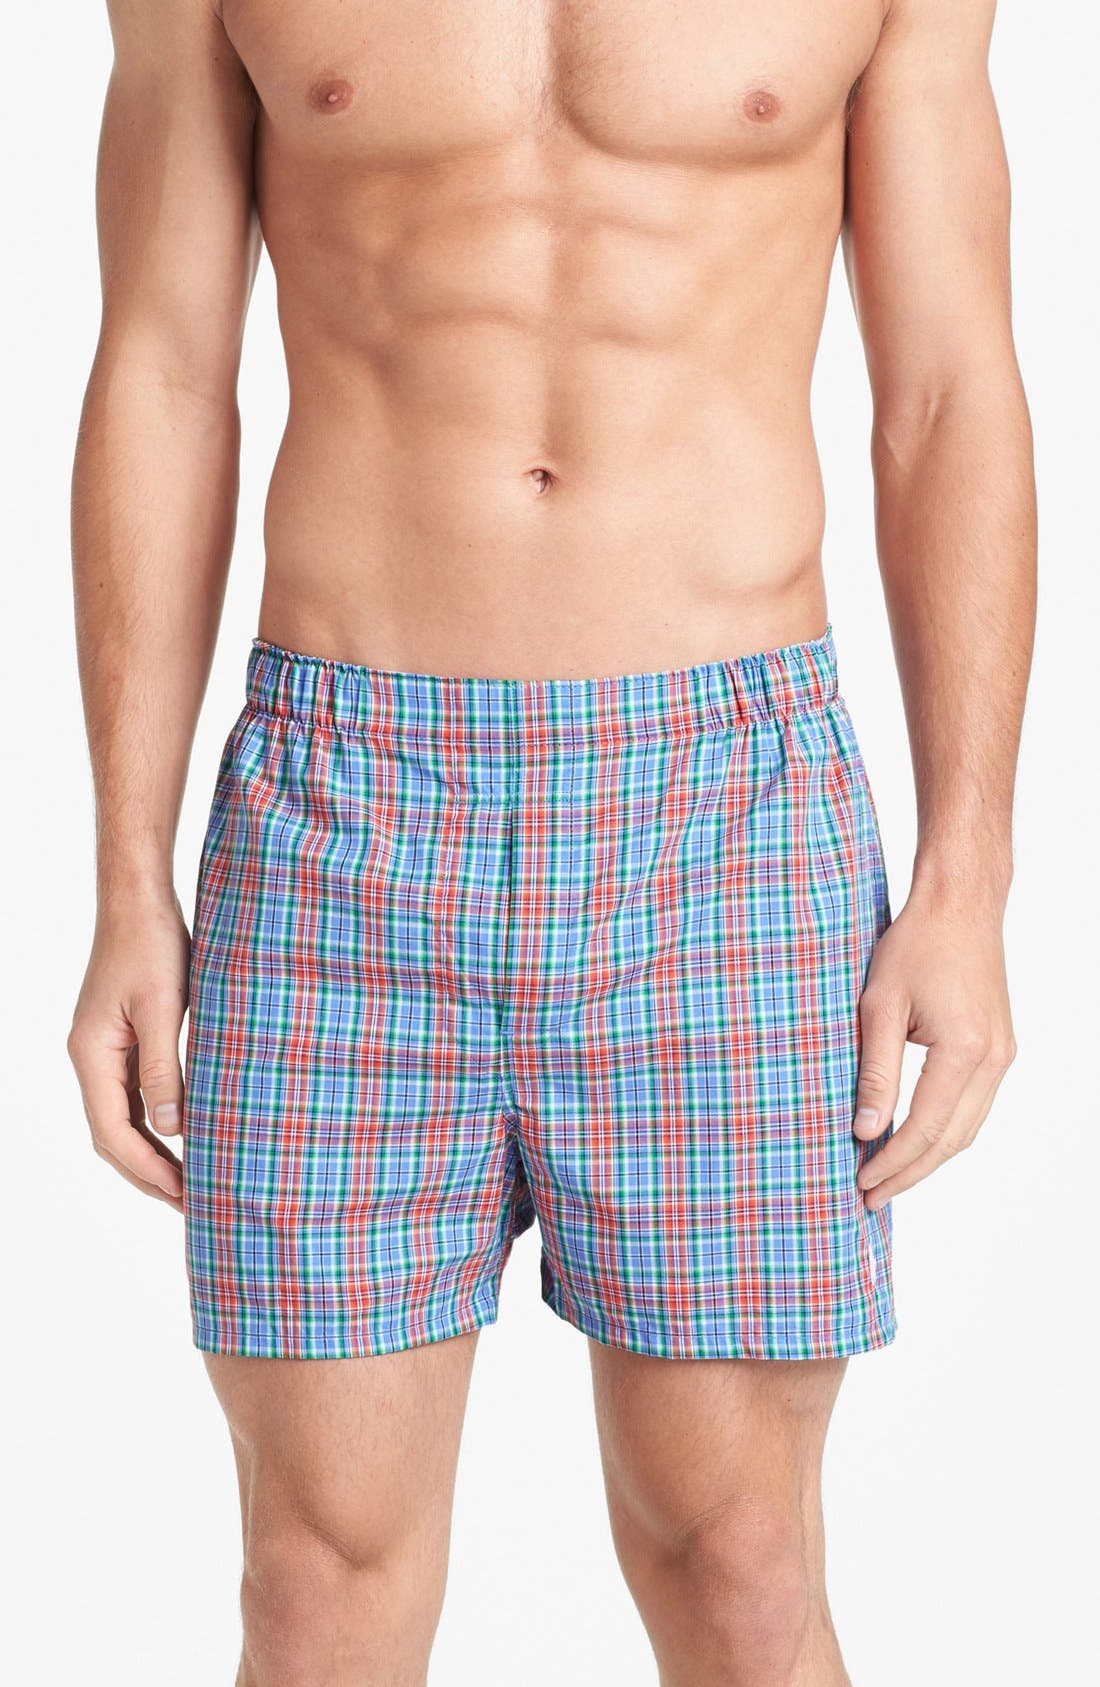 Alternate Image 1 Selected - Polo Ralph Lauren Woven Boxers (Assorted 3-Pack)